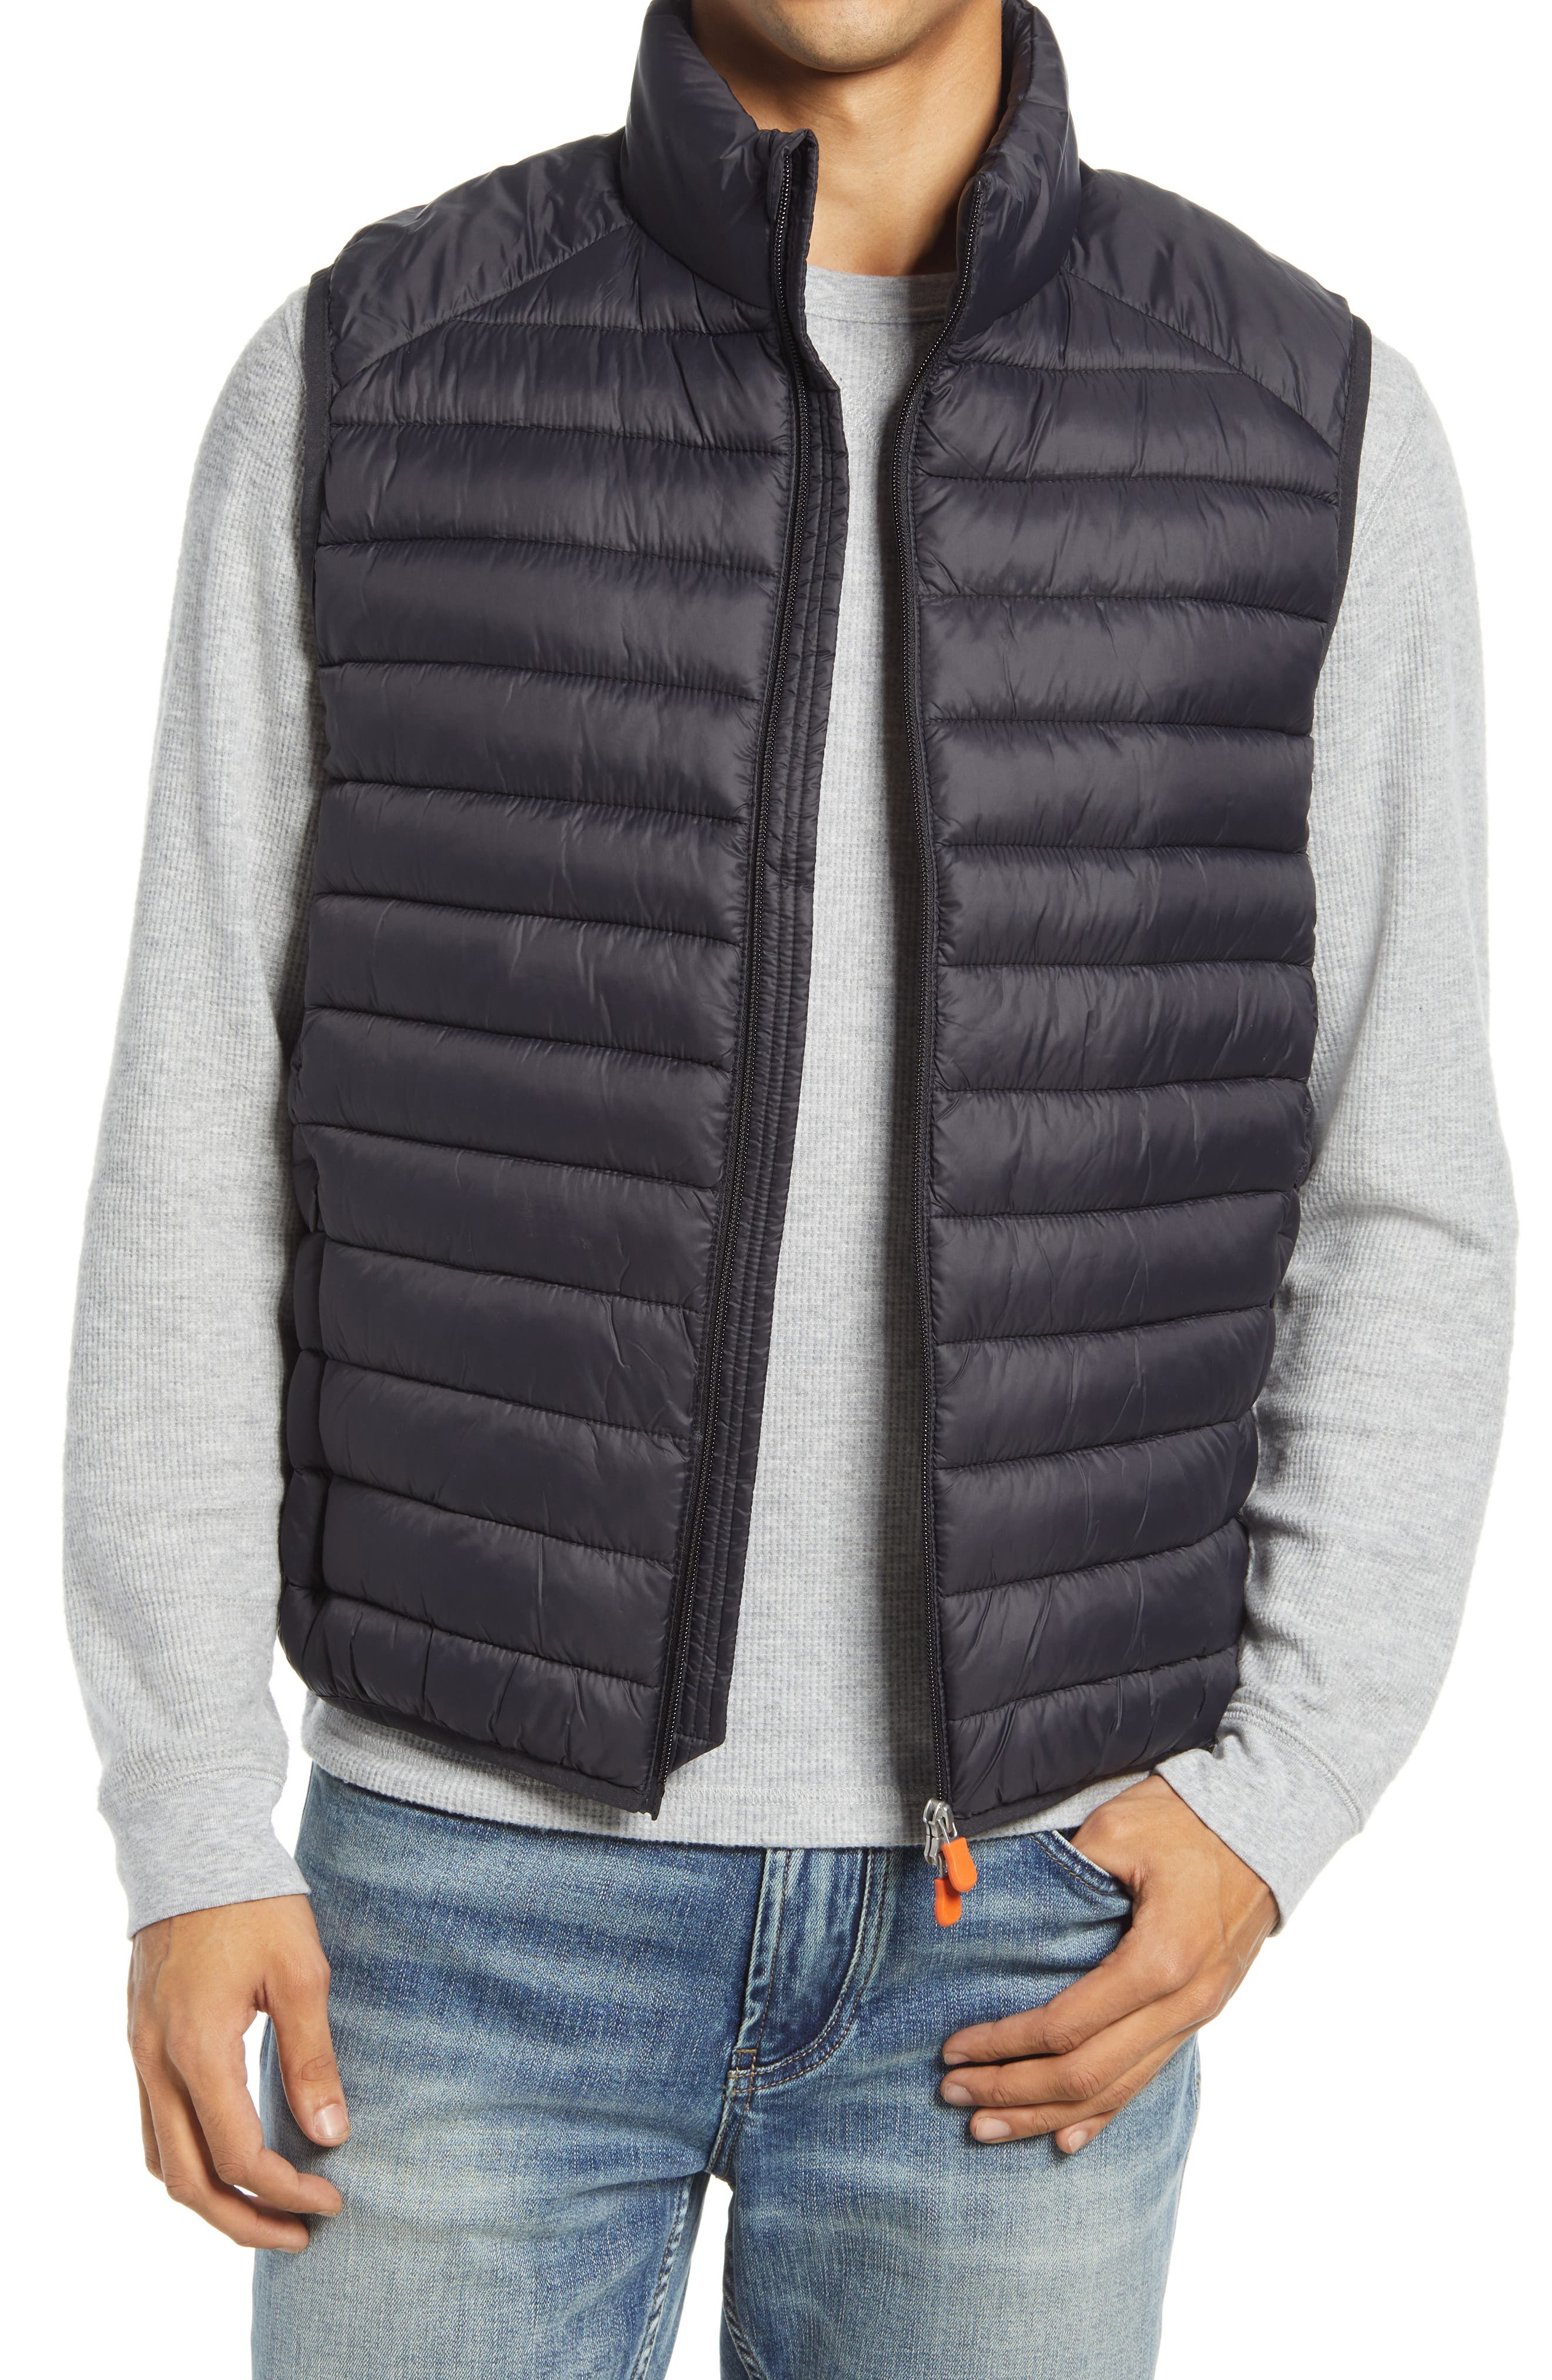 Image of Save The Duck Water & Wind Resistant Puffer Vest